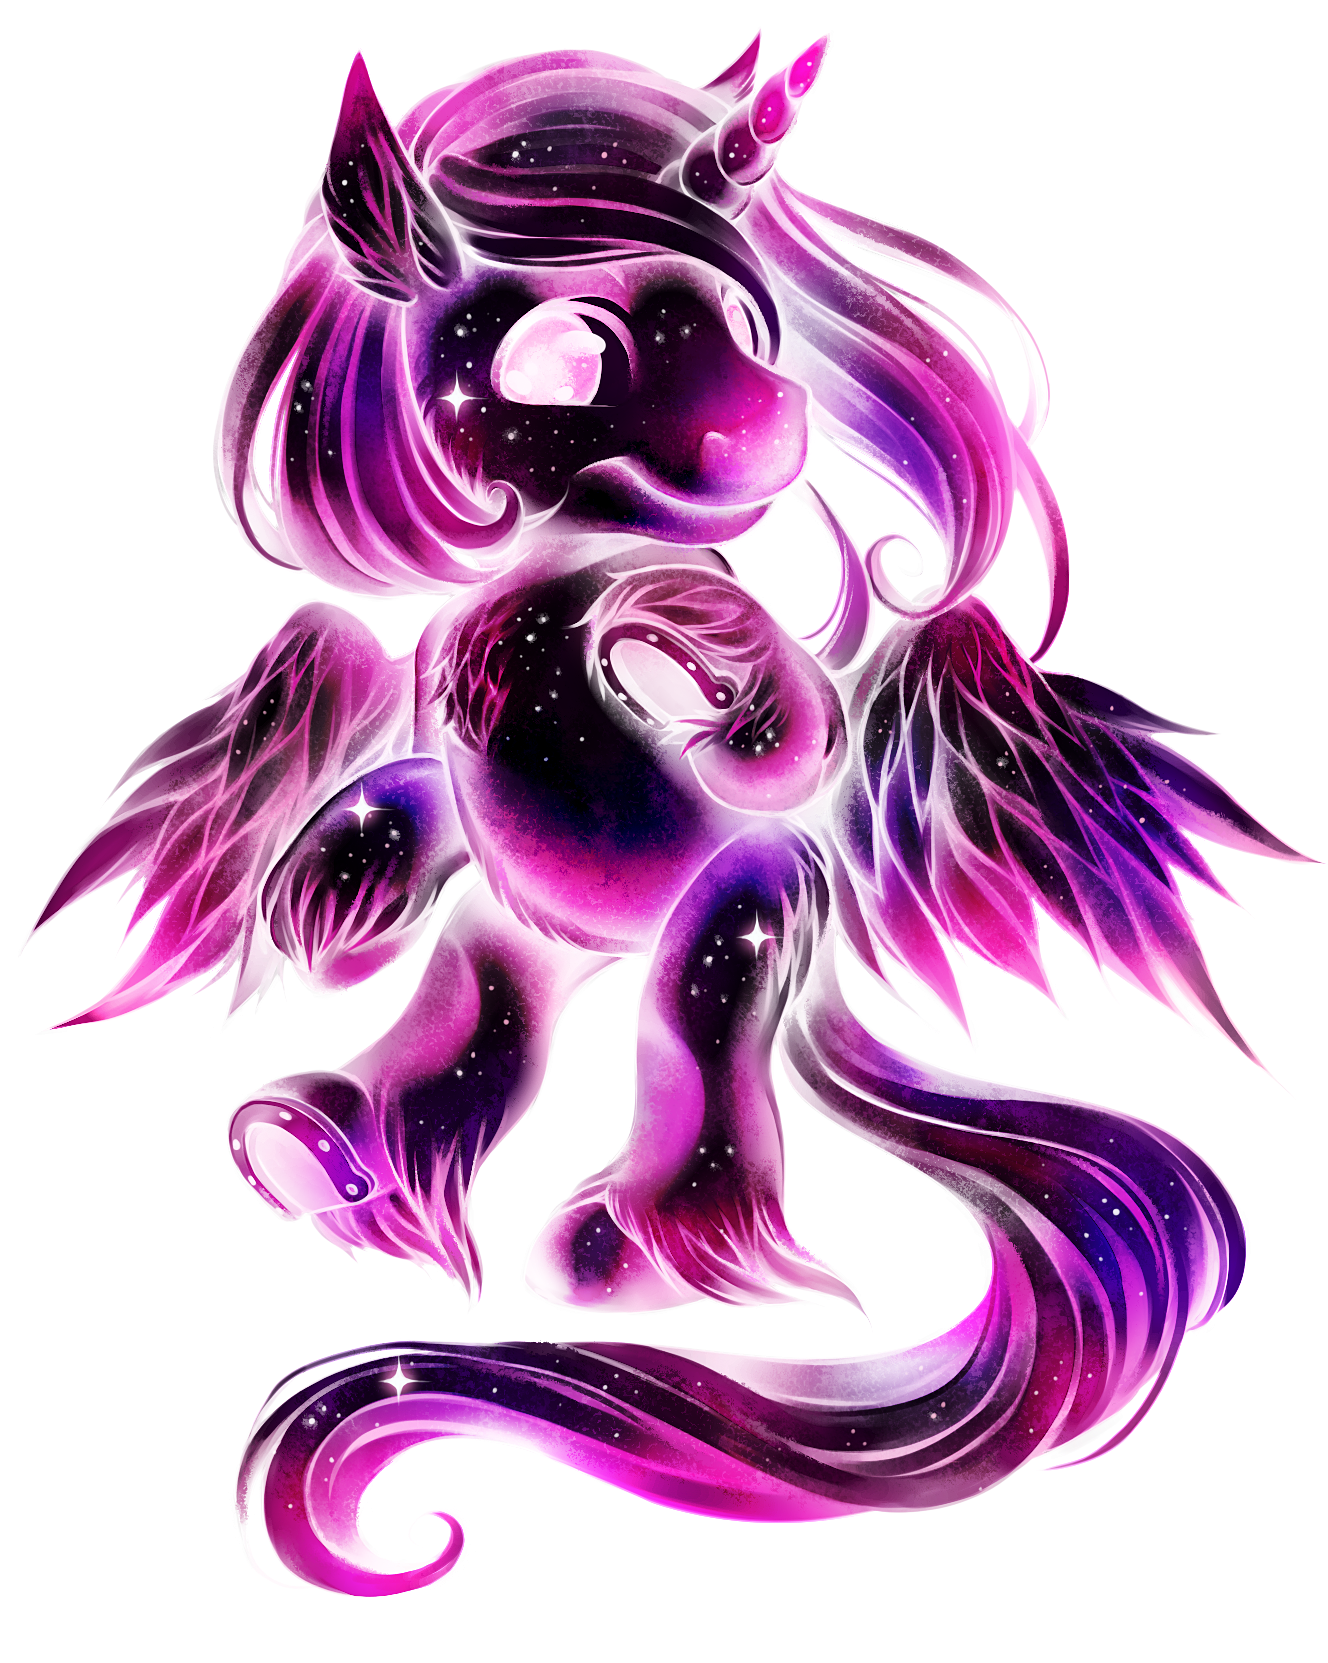 File:Galaxy horse.png